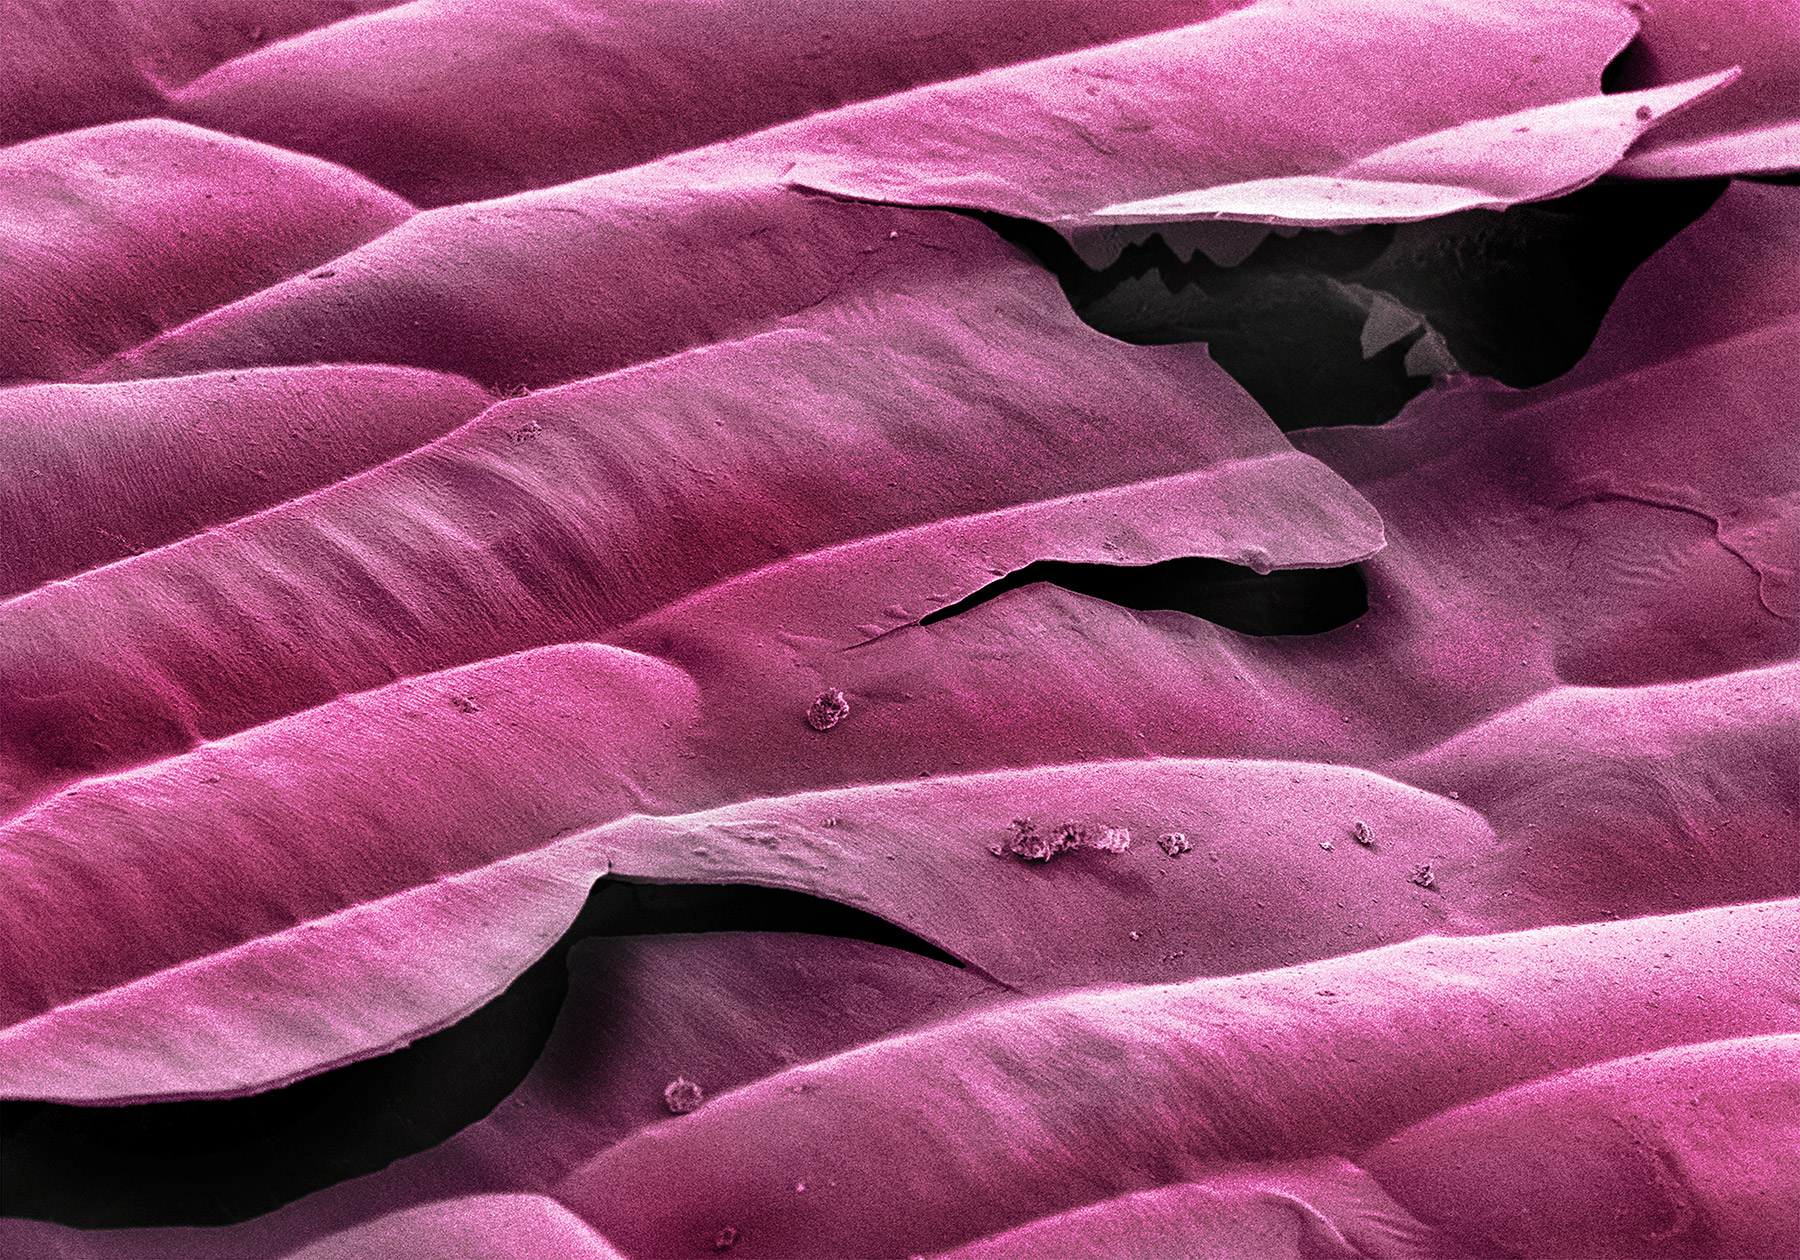 terra cibus no.23: purple onion  230x magnification